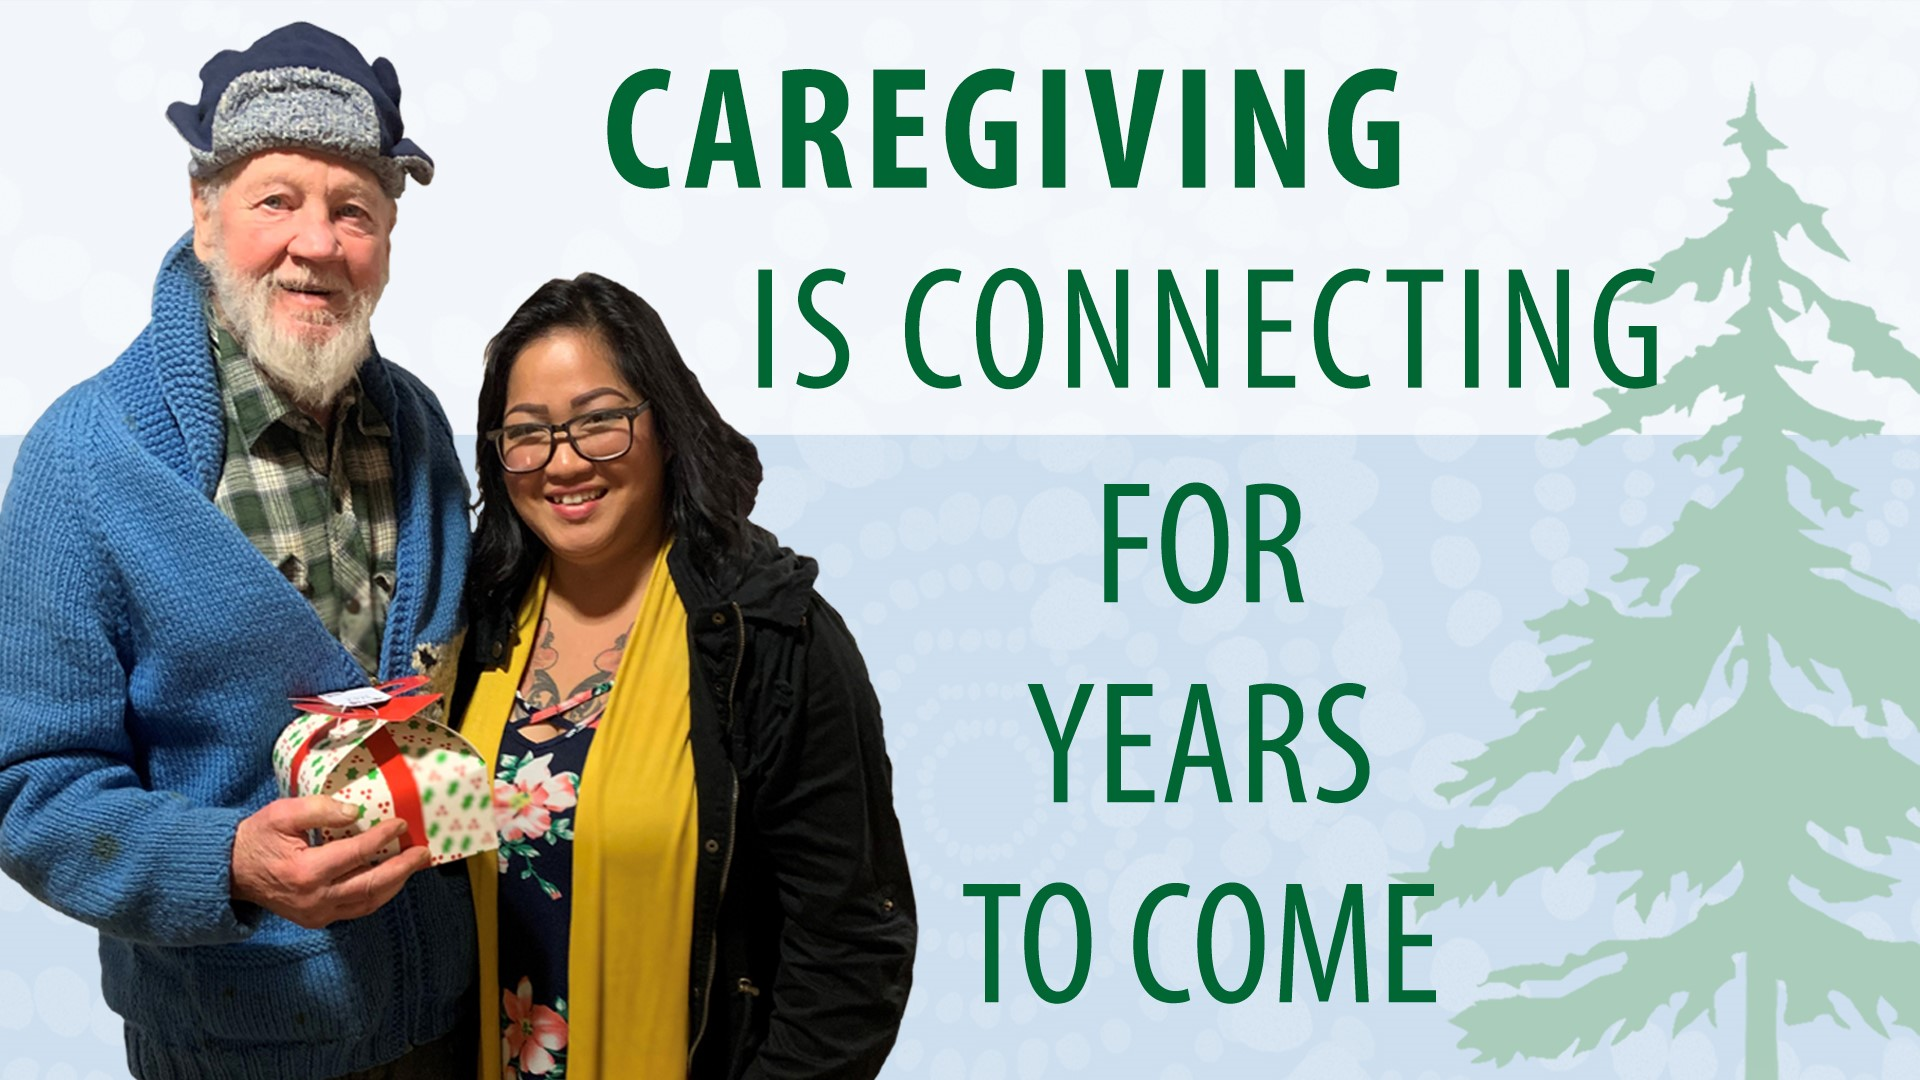 Caregiving is Connecting